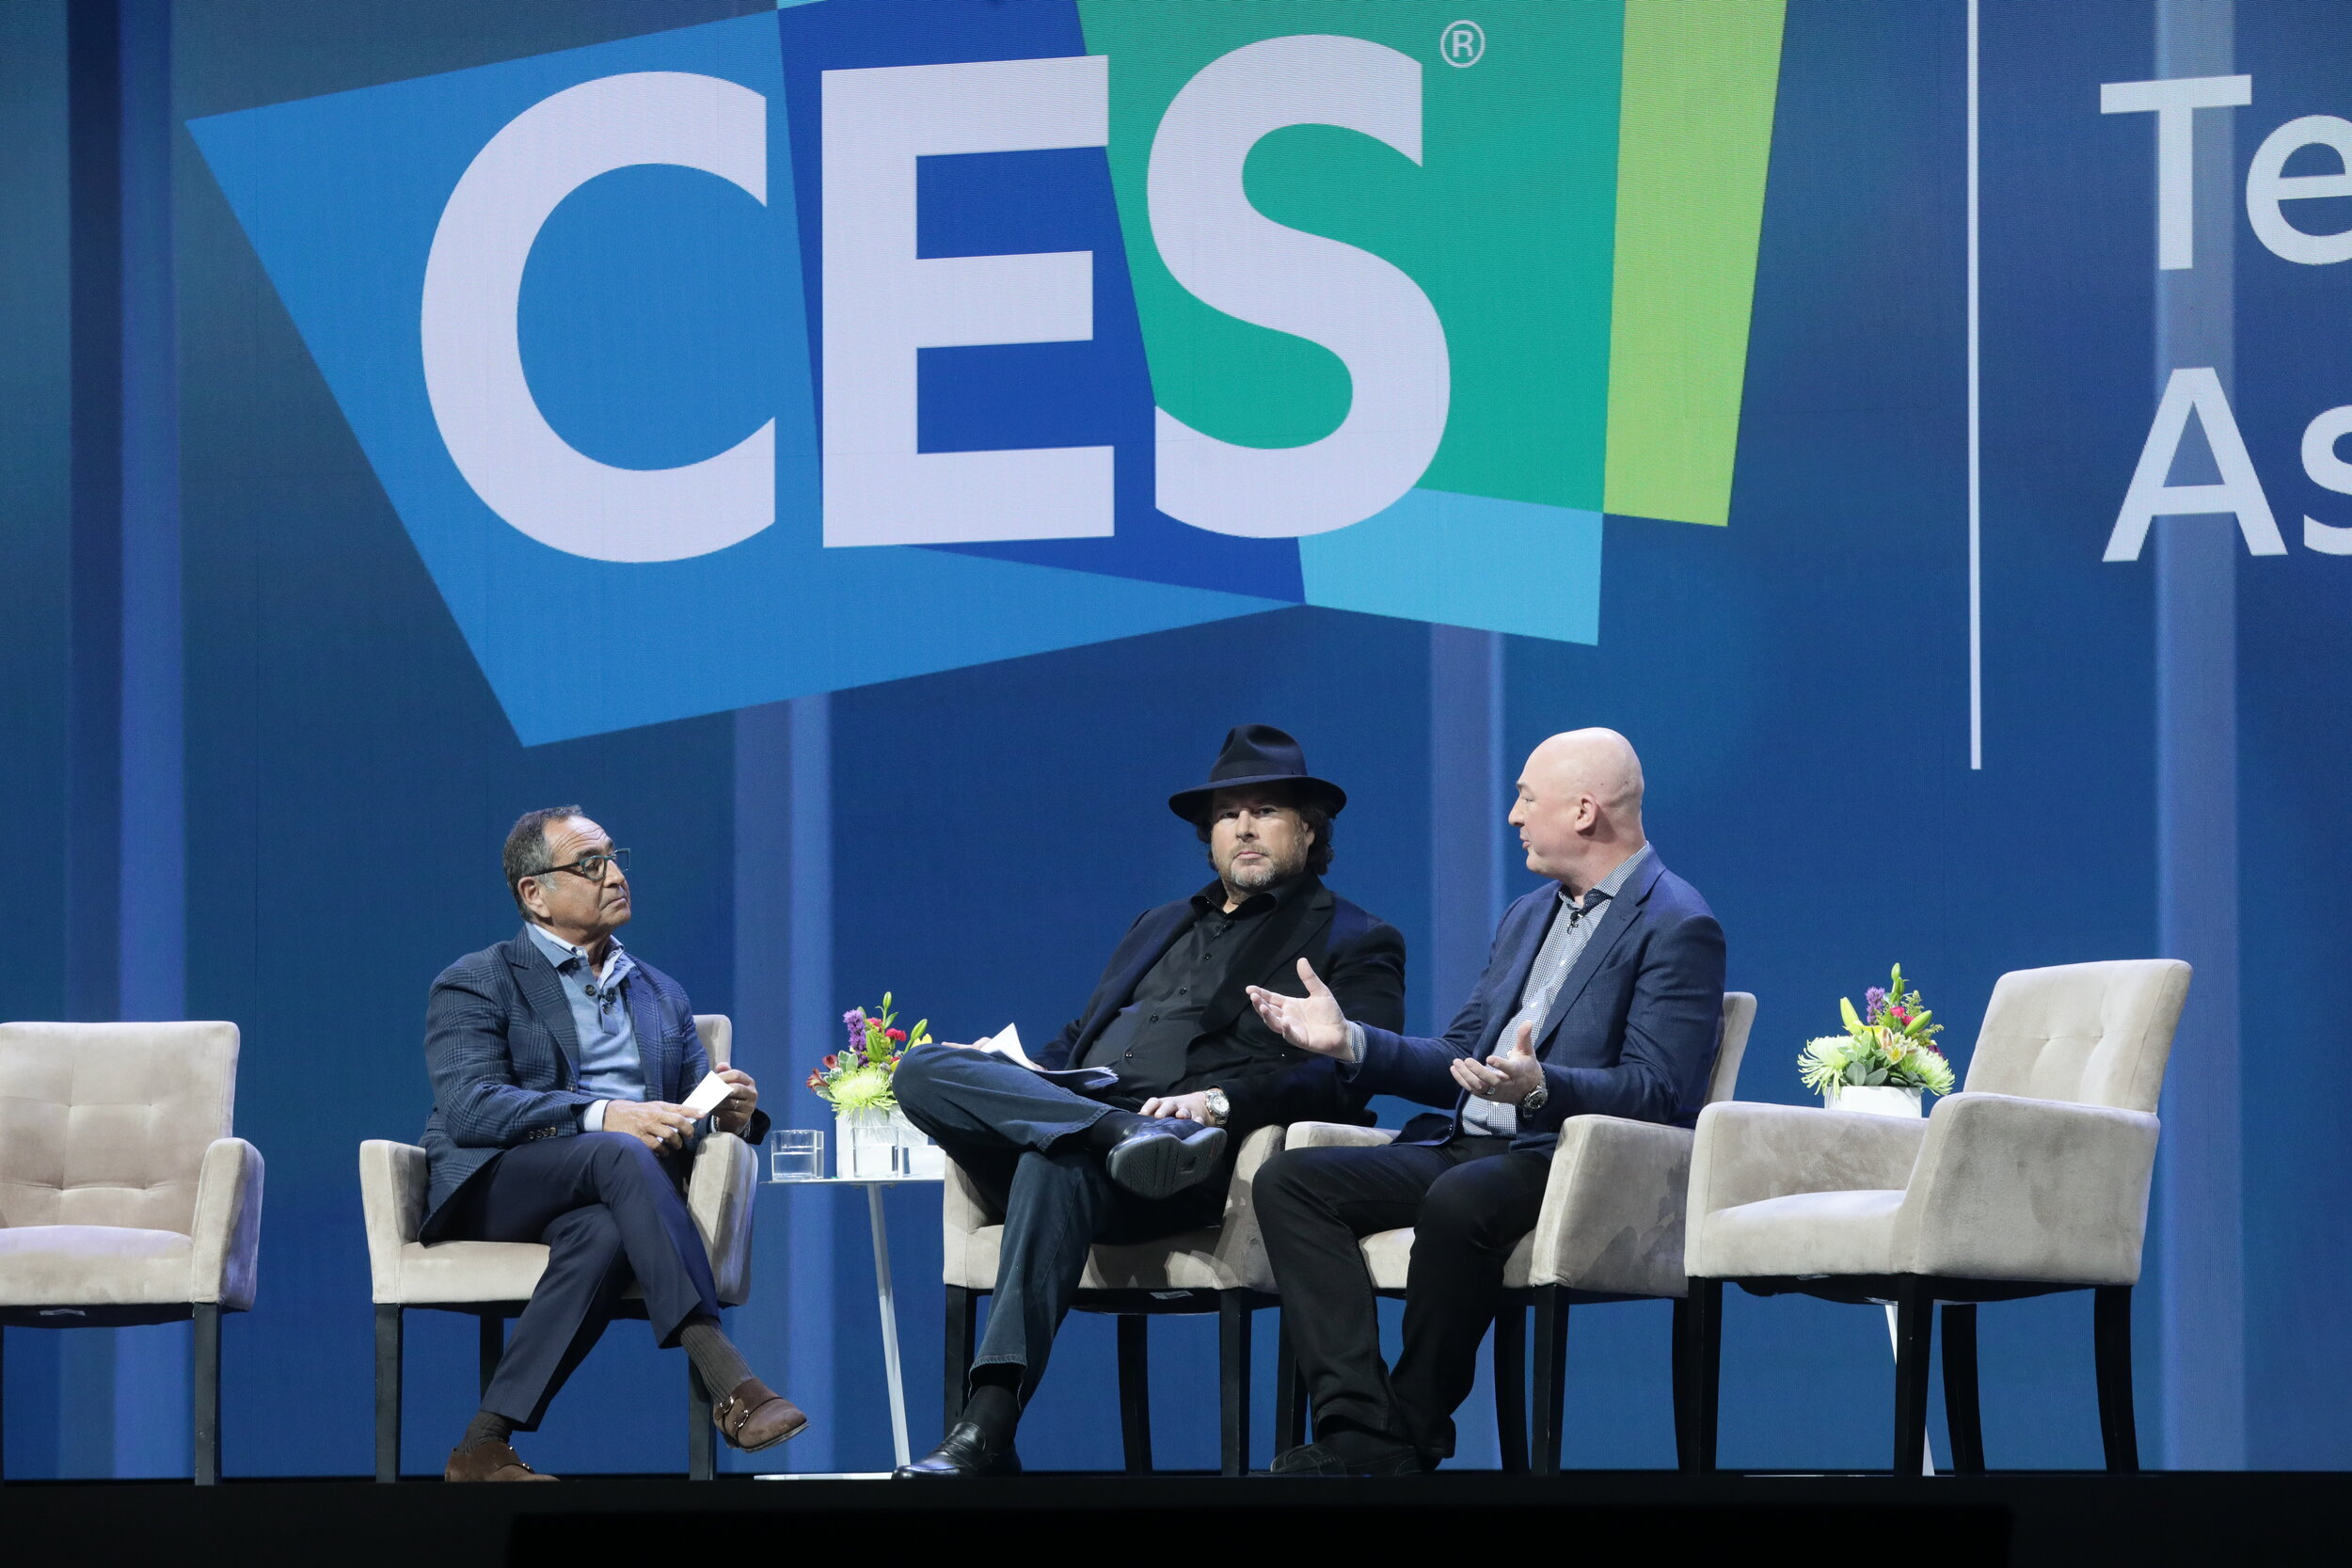 Image from CES®